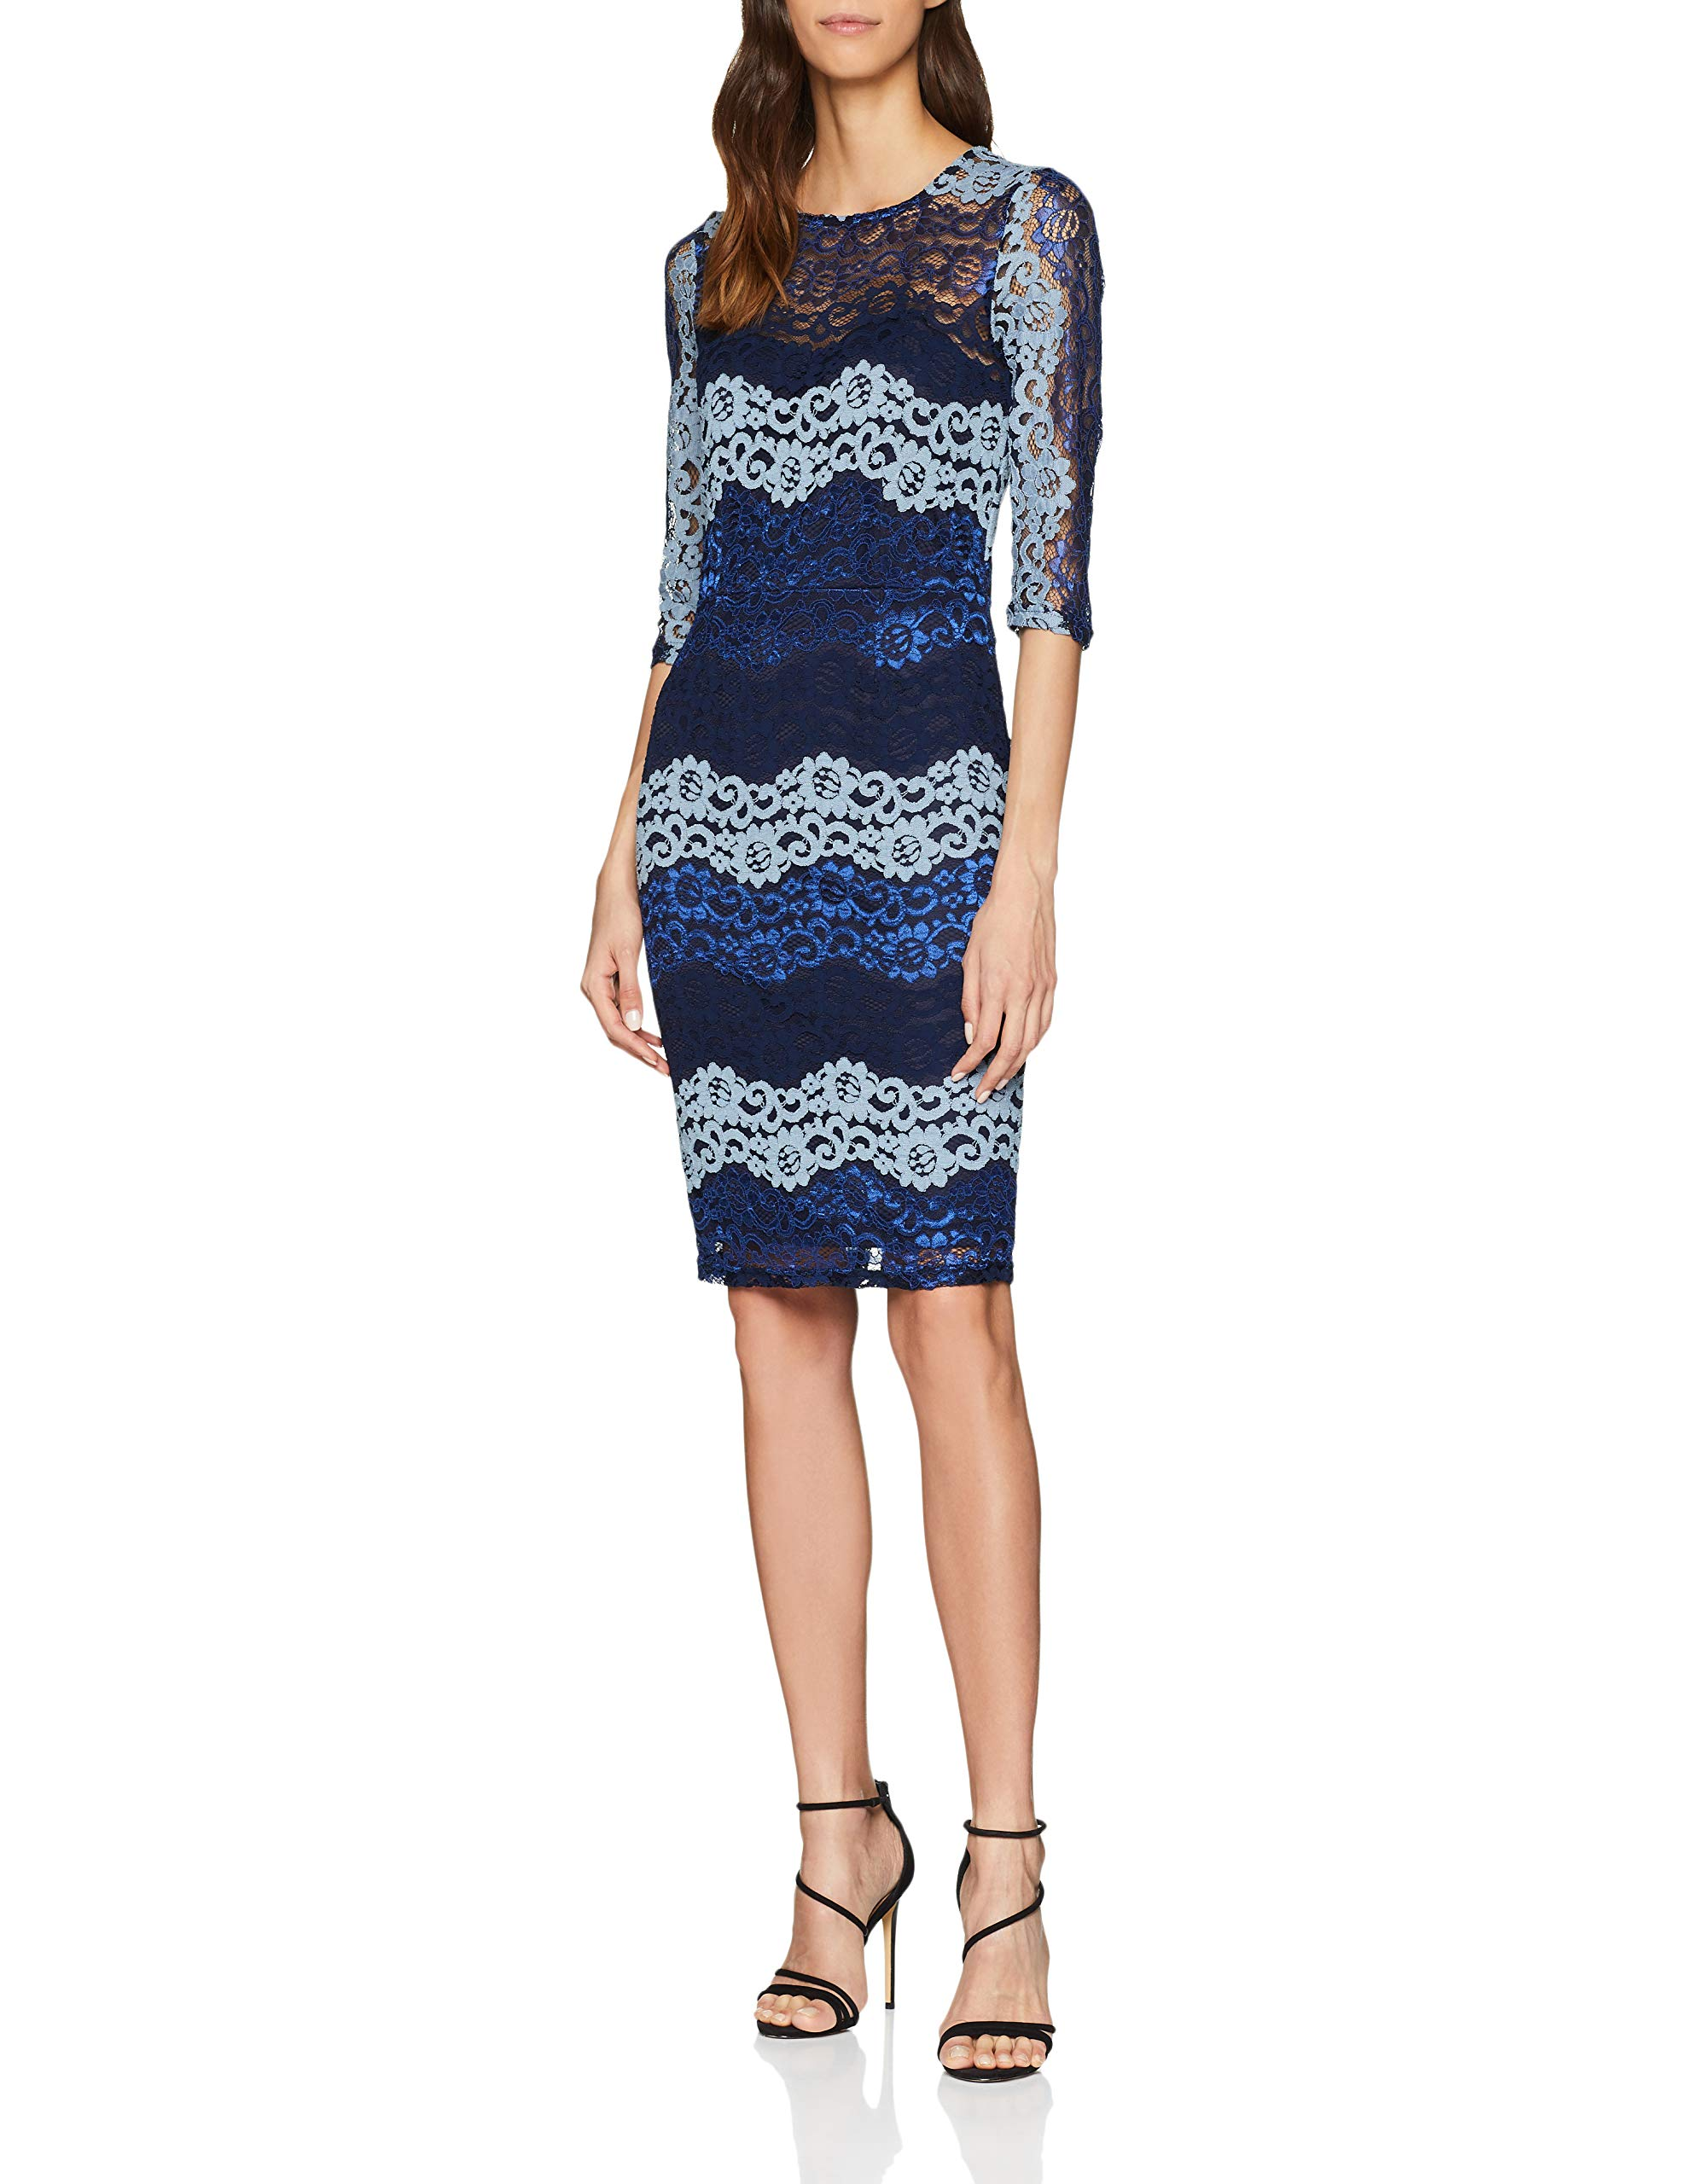 Dolls Bodycon Paper Lace RobeBleublue 00140taille Fabricant12Femme WEHD29IY